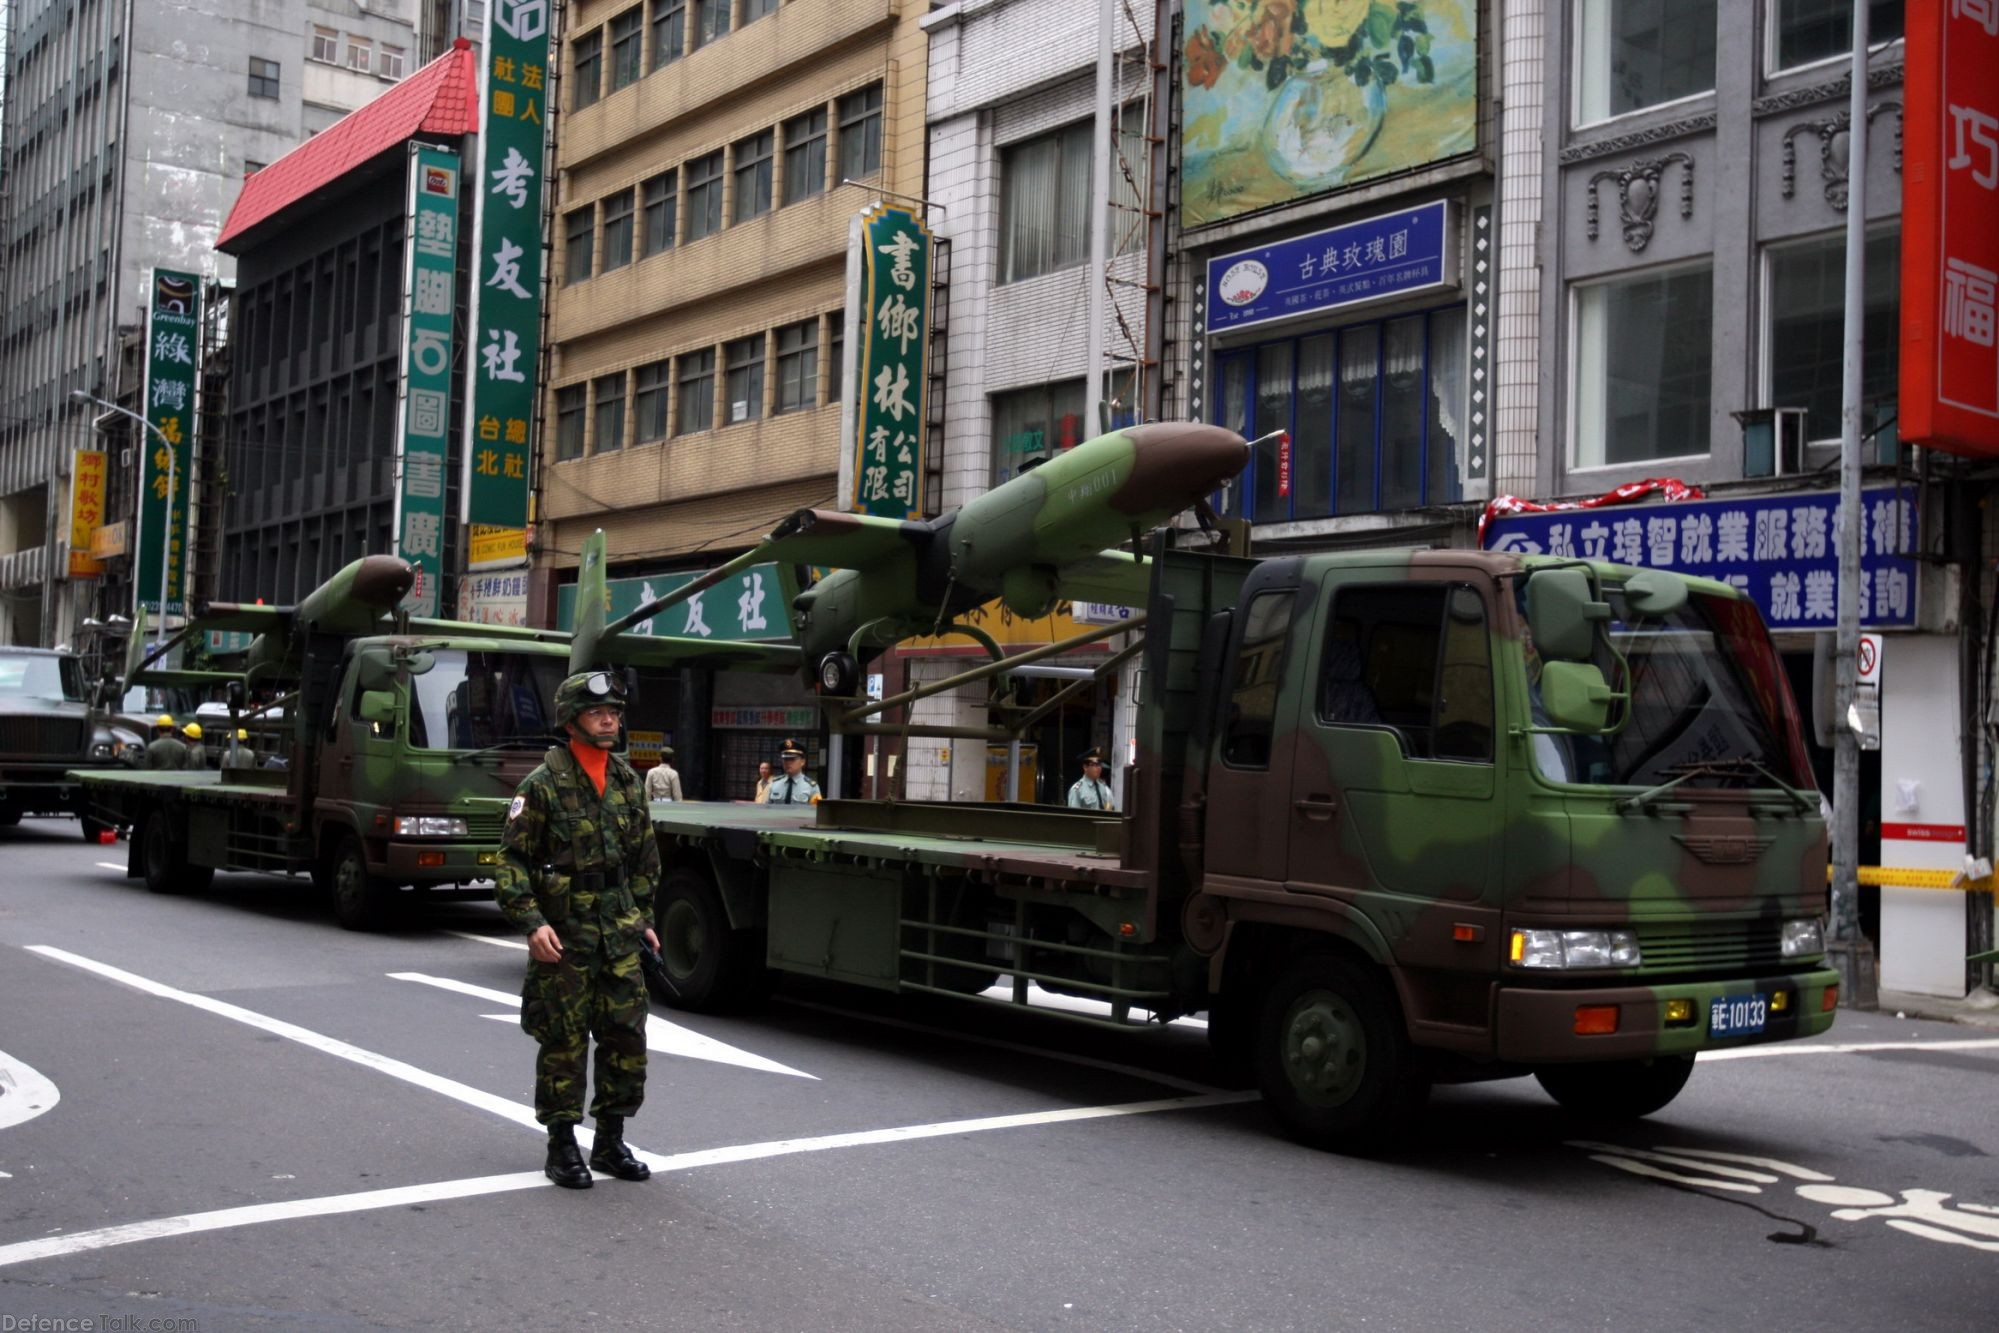 UAV at the Military Parade - Taiwan Armed Forces